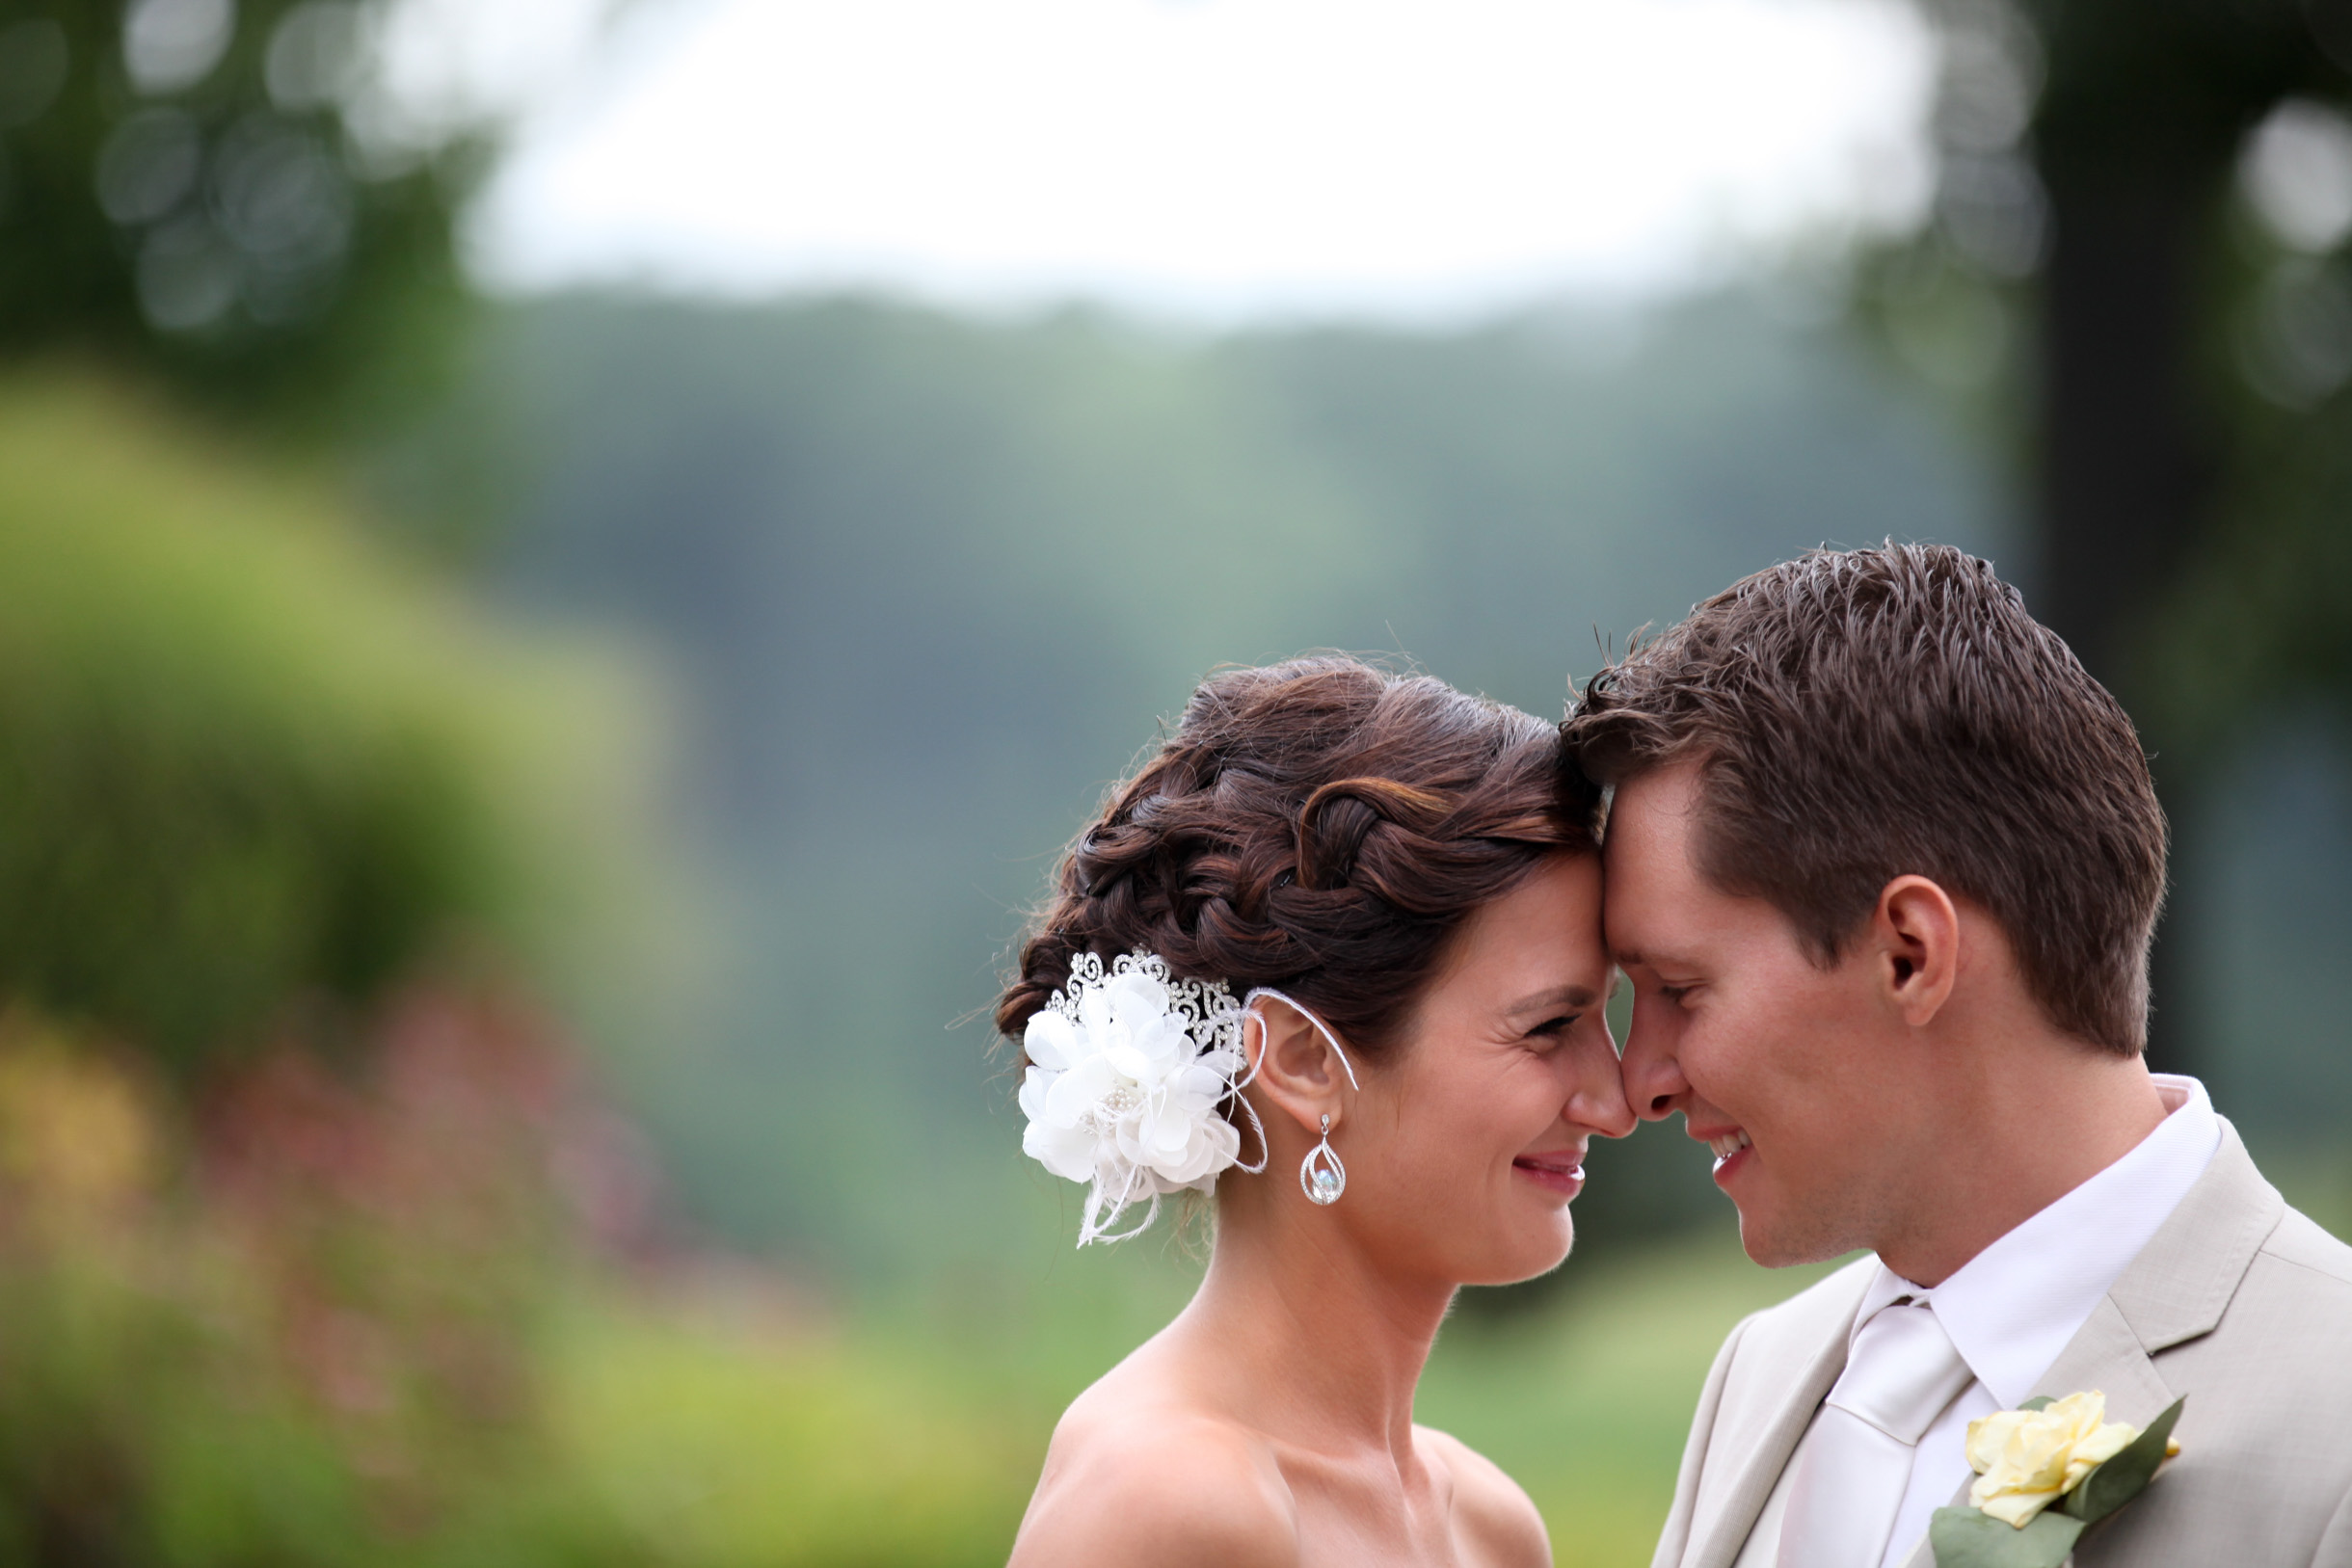 Bride and groom resting foreheads together and smiling